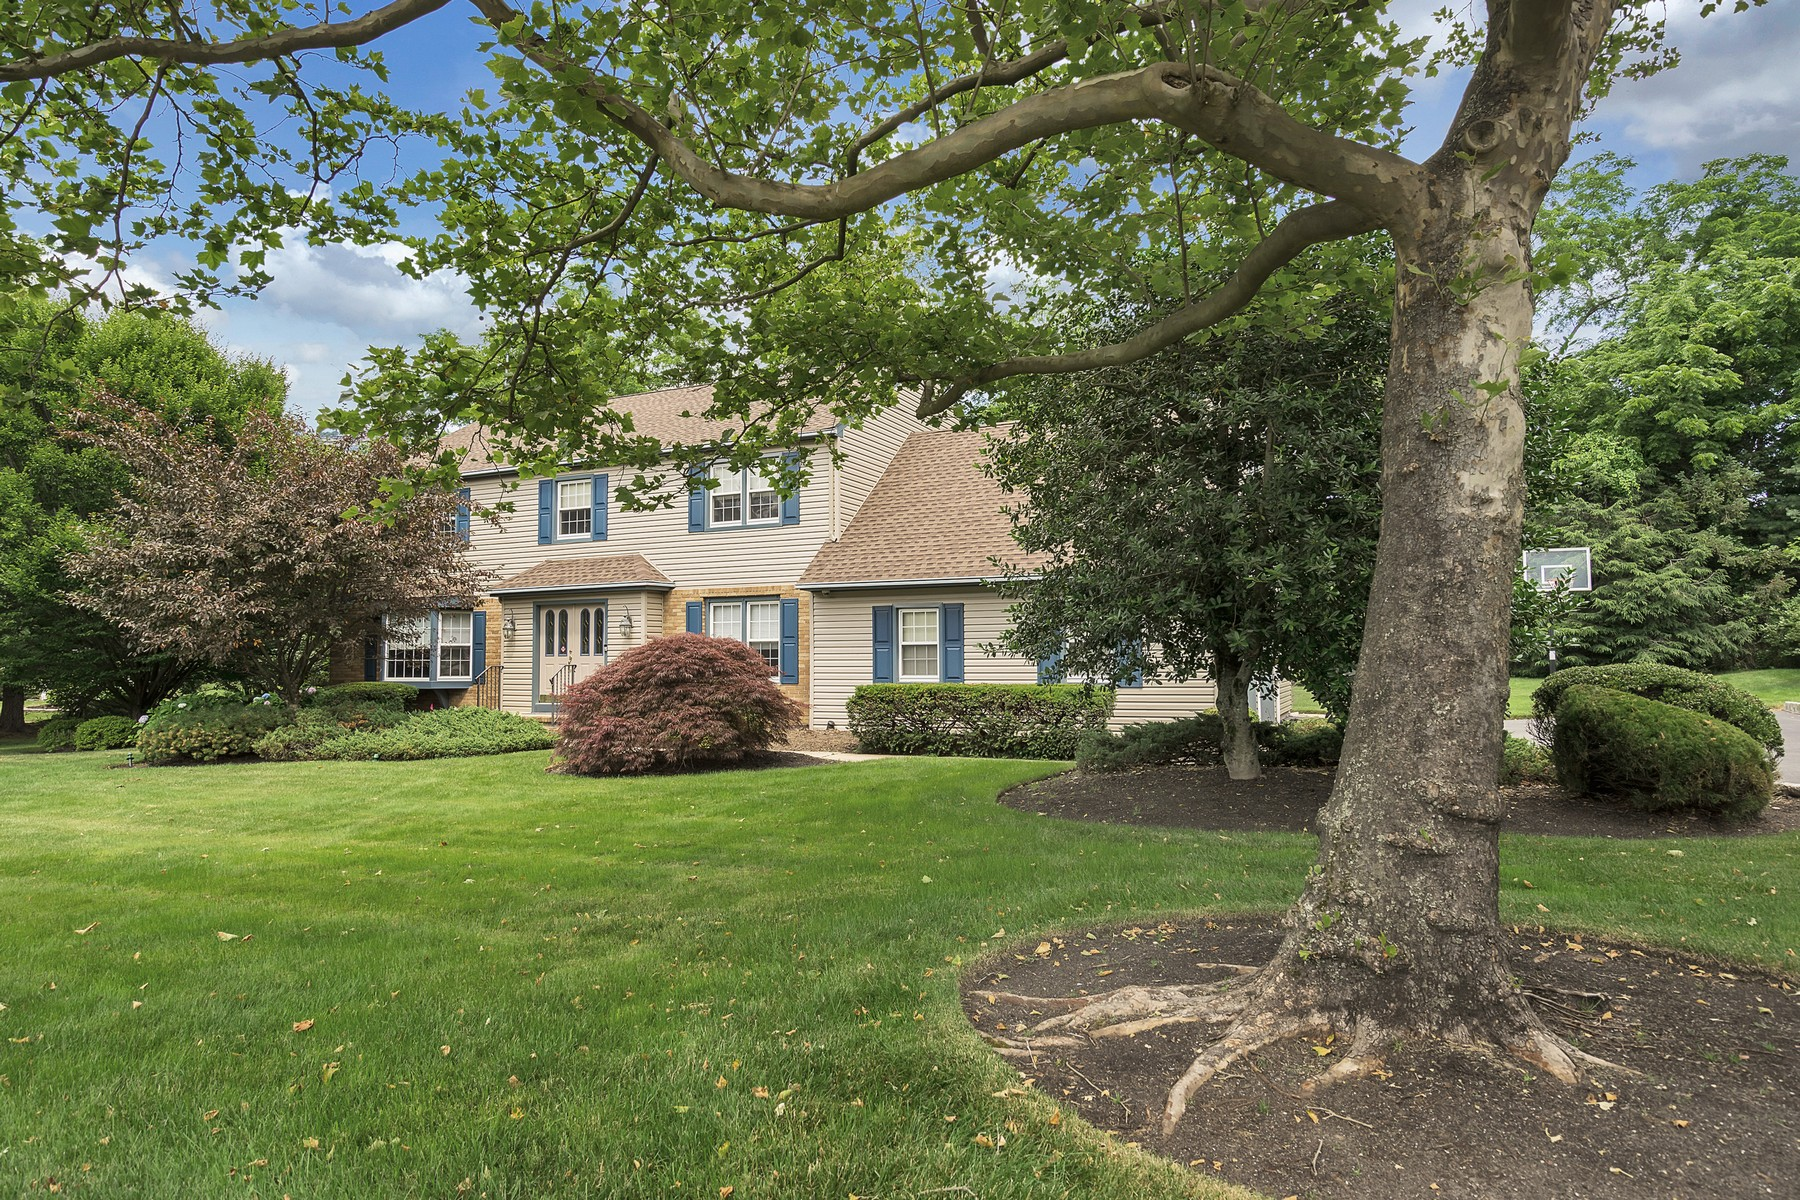 Single Family Home for Sale at Location, Location 18 S Arlene Drive West Long Branch, New Jersey 07764 United States